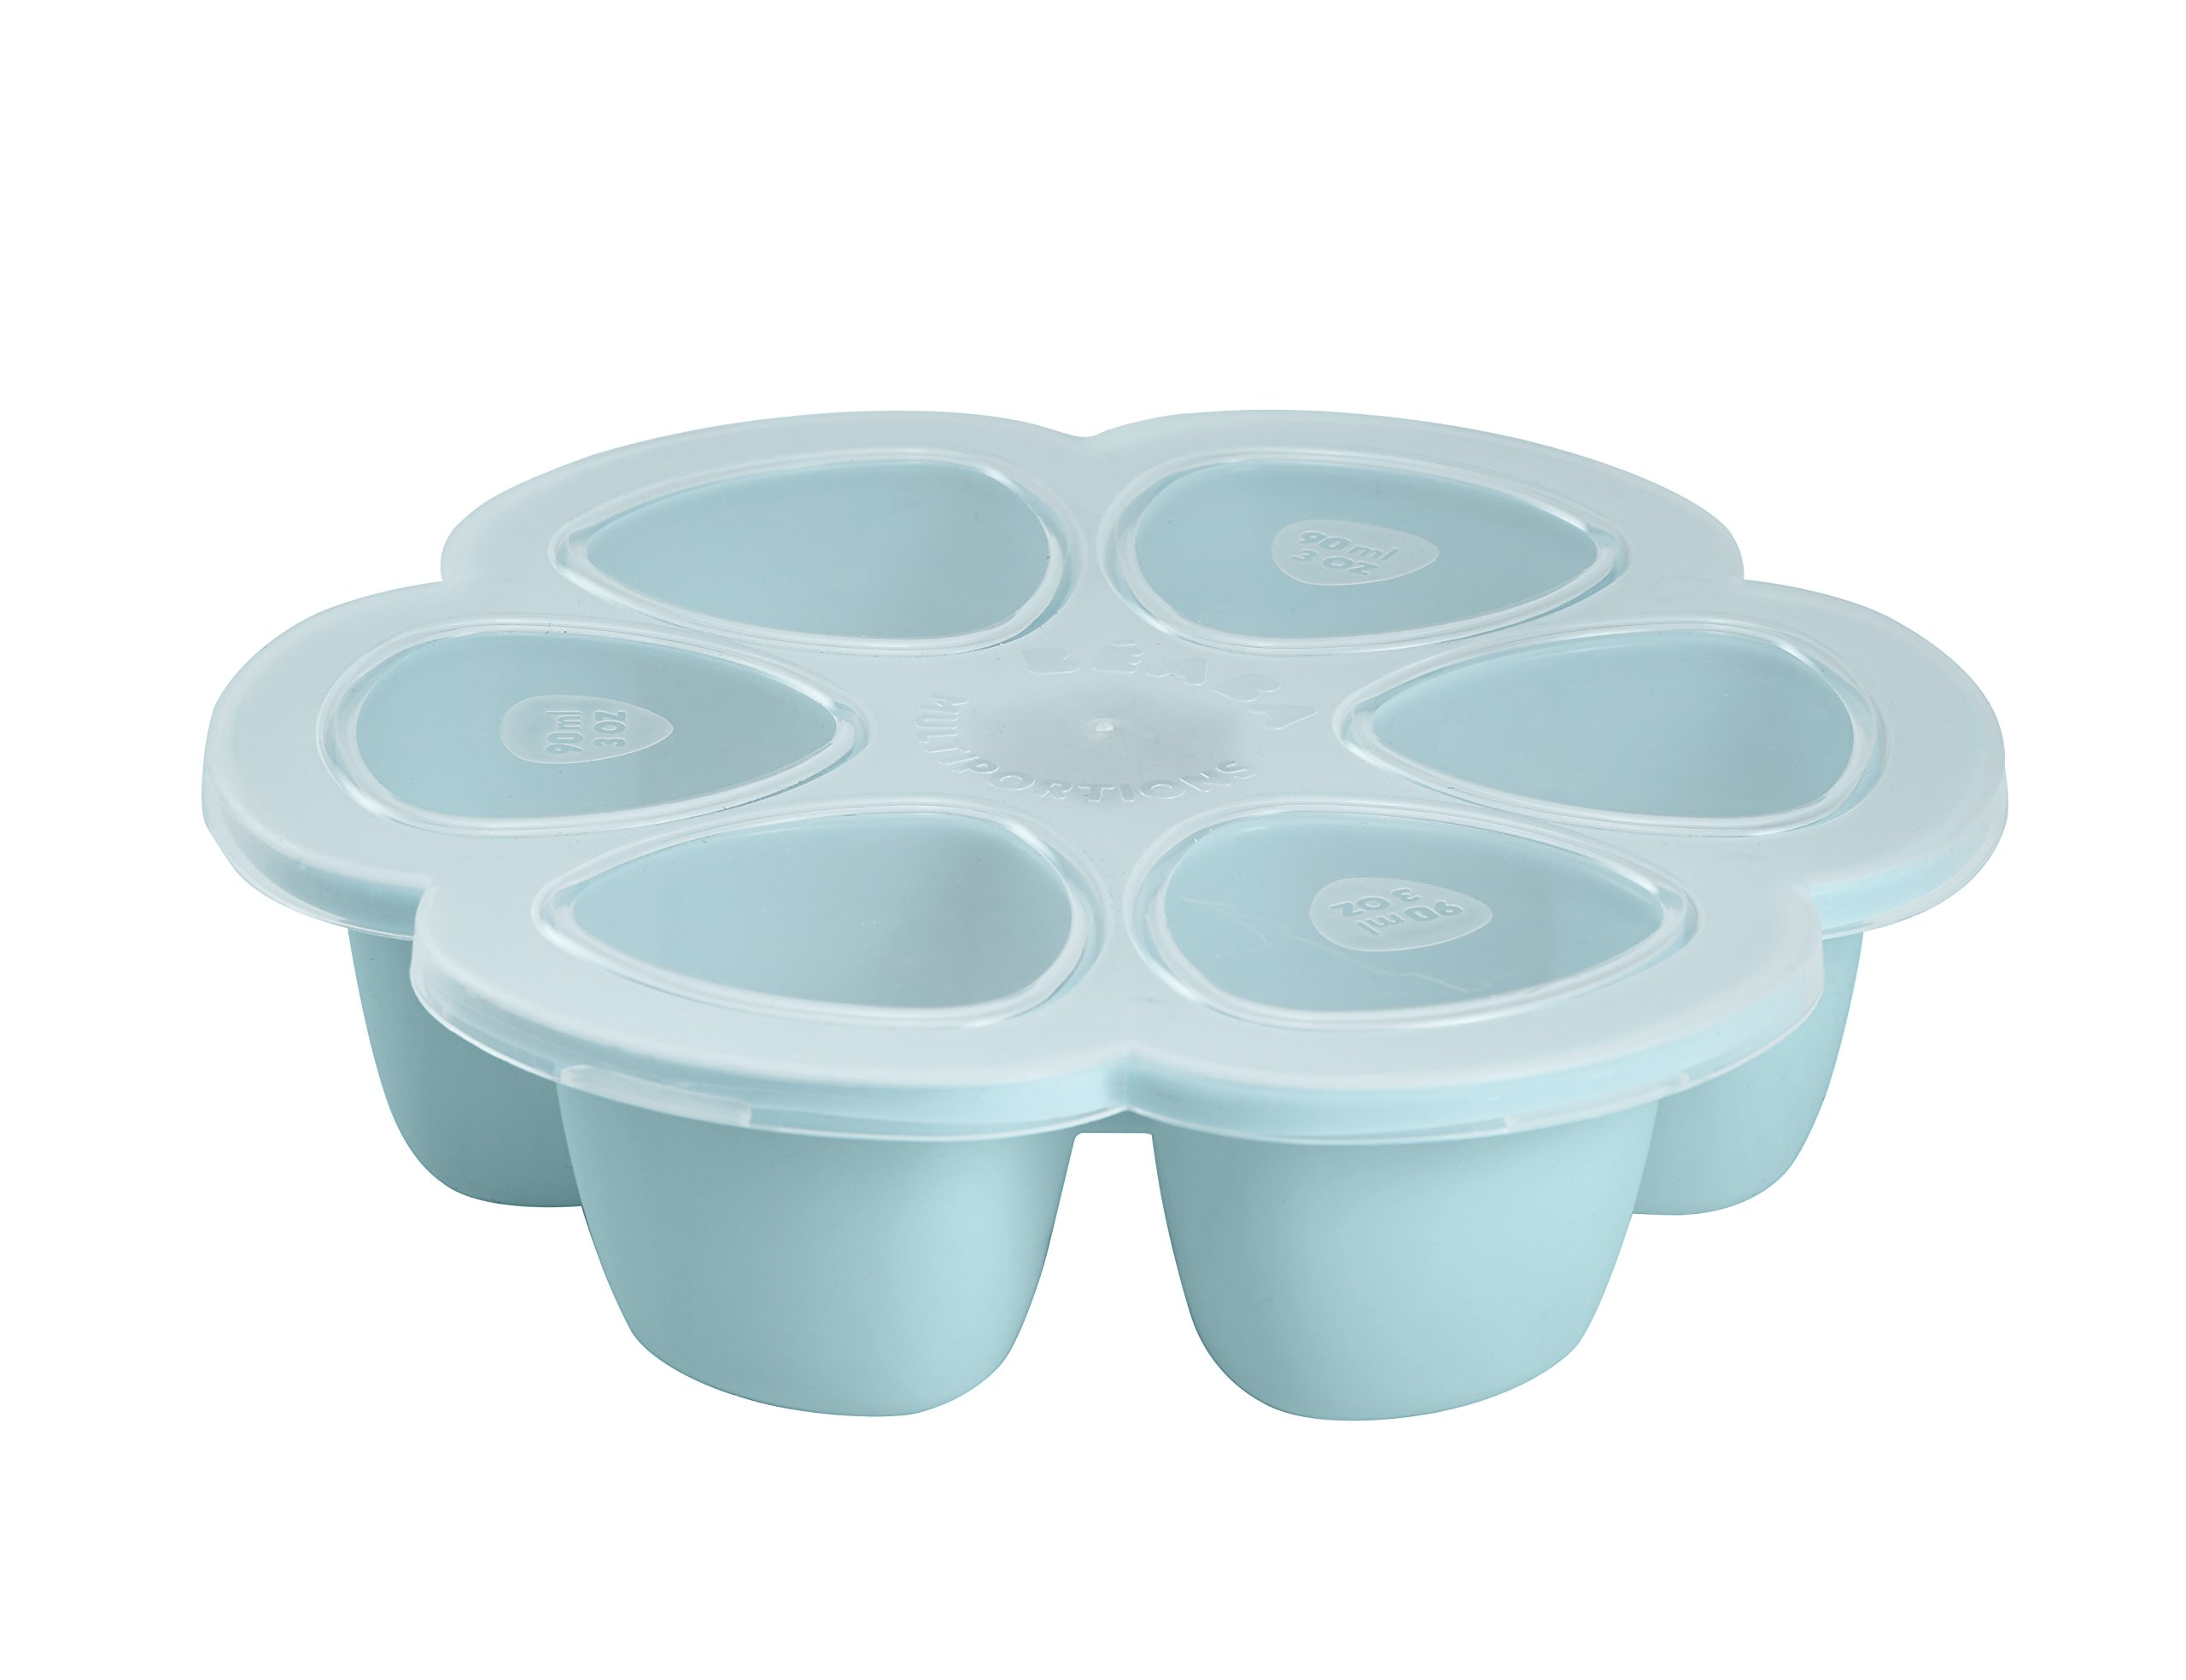 BEABA Silicone Multiportions Baby Food Tray, Oven Safe, Made in Italy, Sky, 3 oz by Beaba